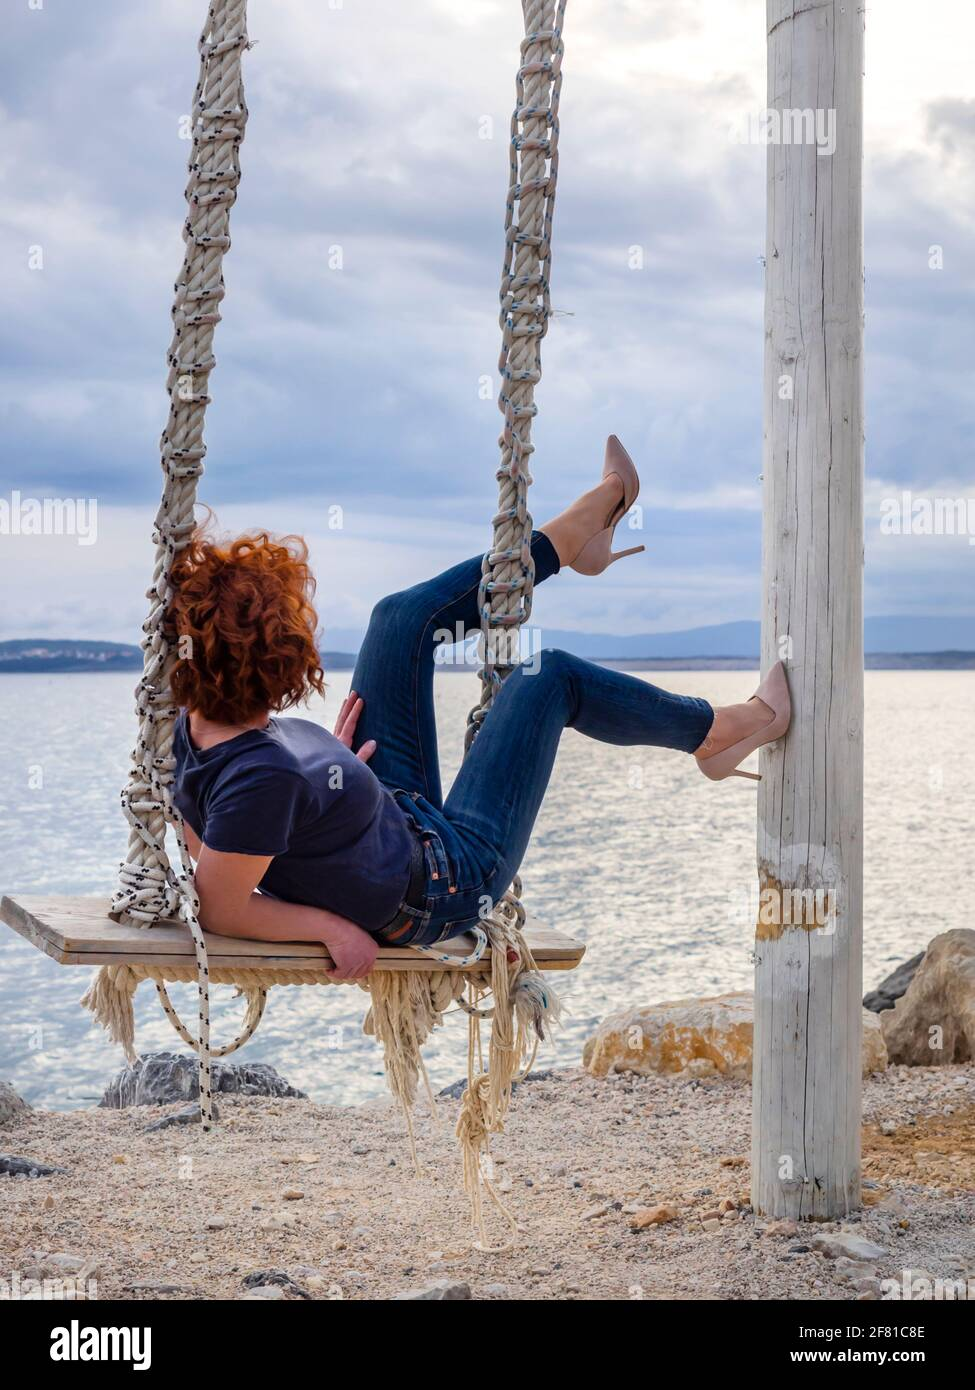 Woman redhair redhaired Red hair curls curly playful playground on swings on seaside legs heels Stock Photo